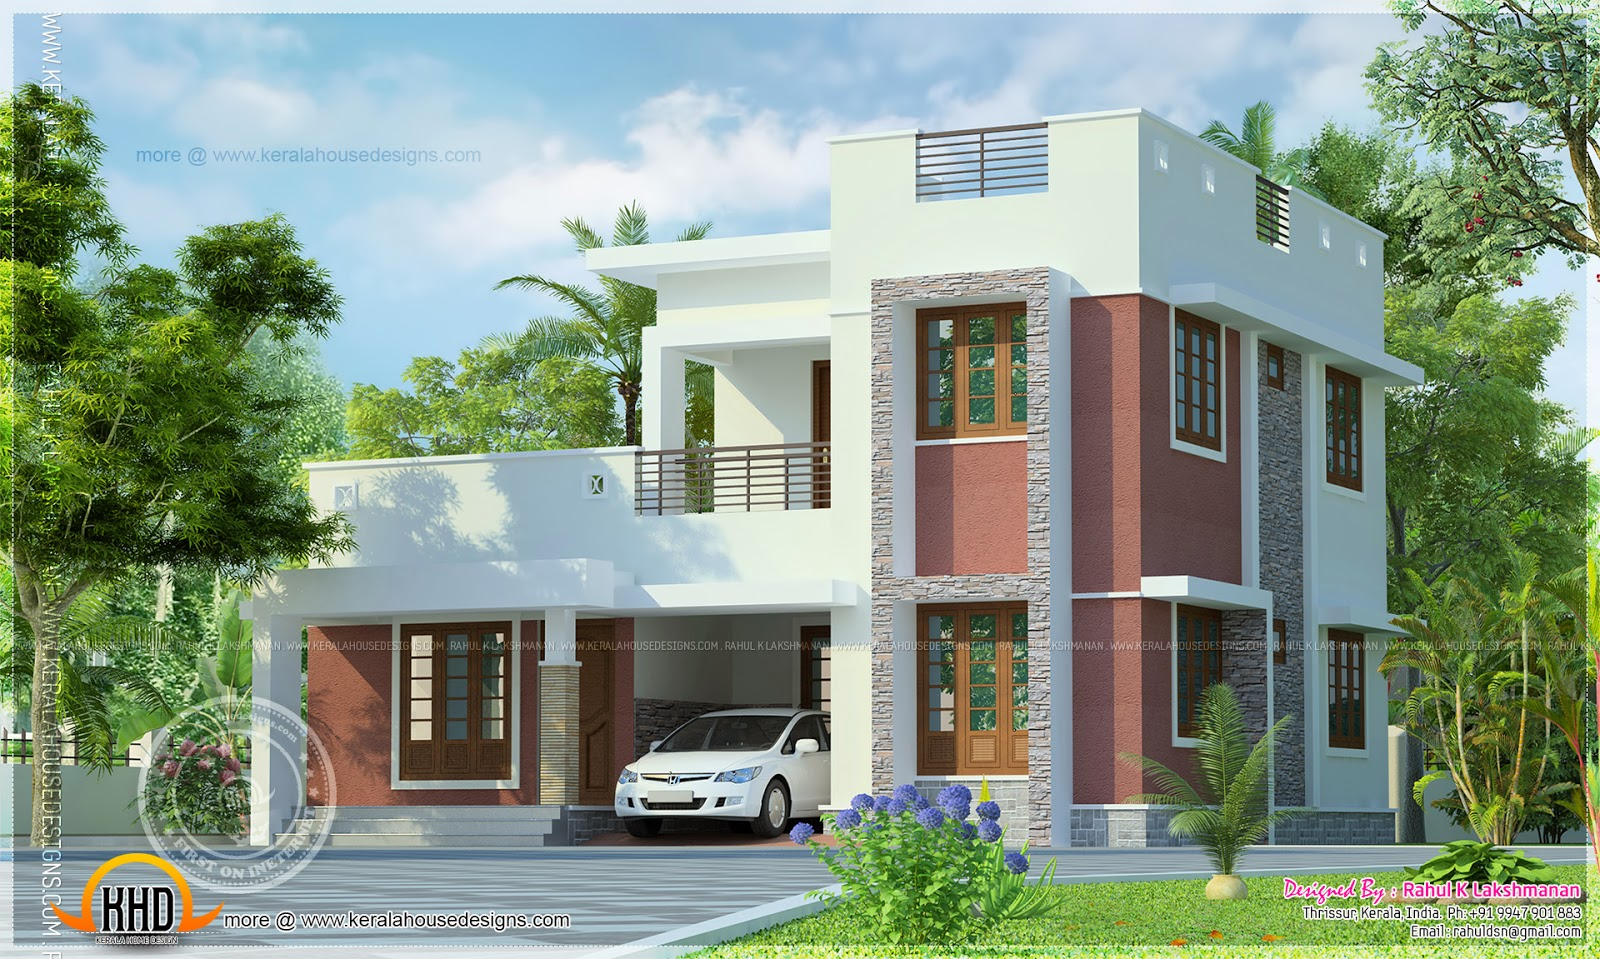 Simple flat roof house exterior kerala home design and for Basic house design